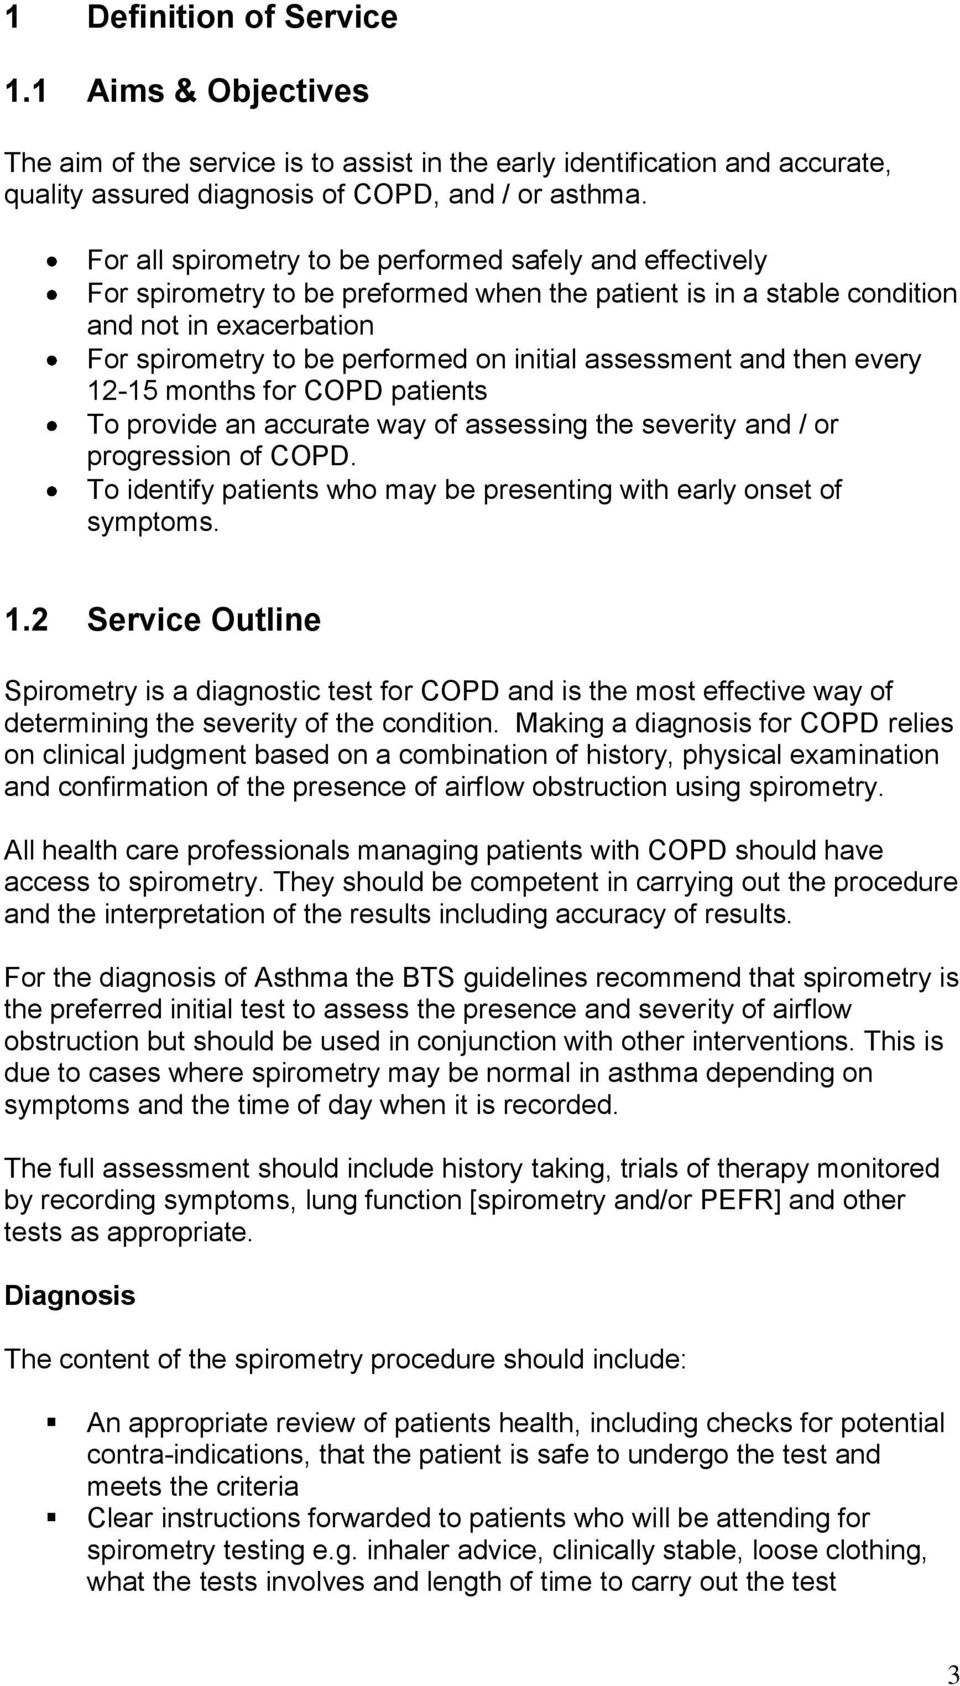 assessment and then every 12-15 months for COPD patients To provide an accurate way of assessing the severity and / or progression of COPD.